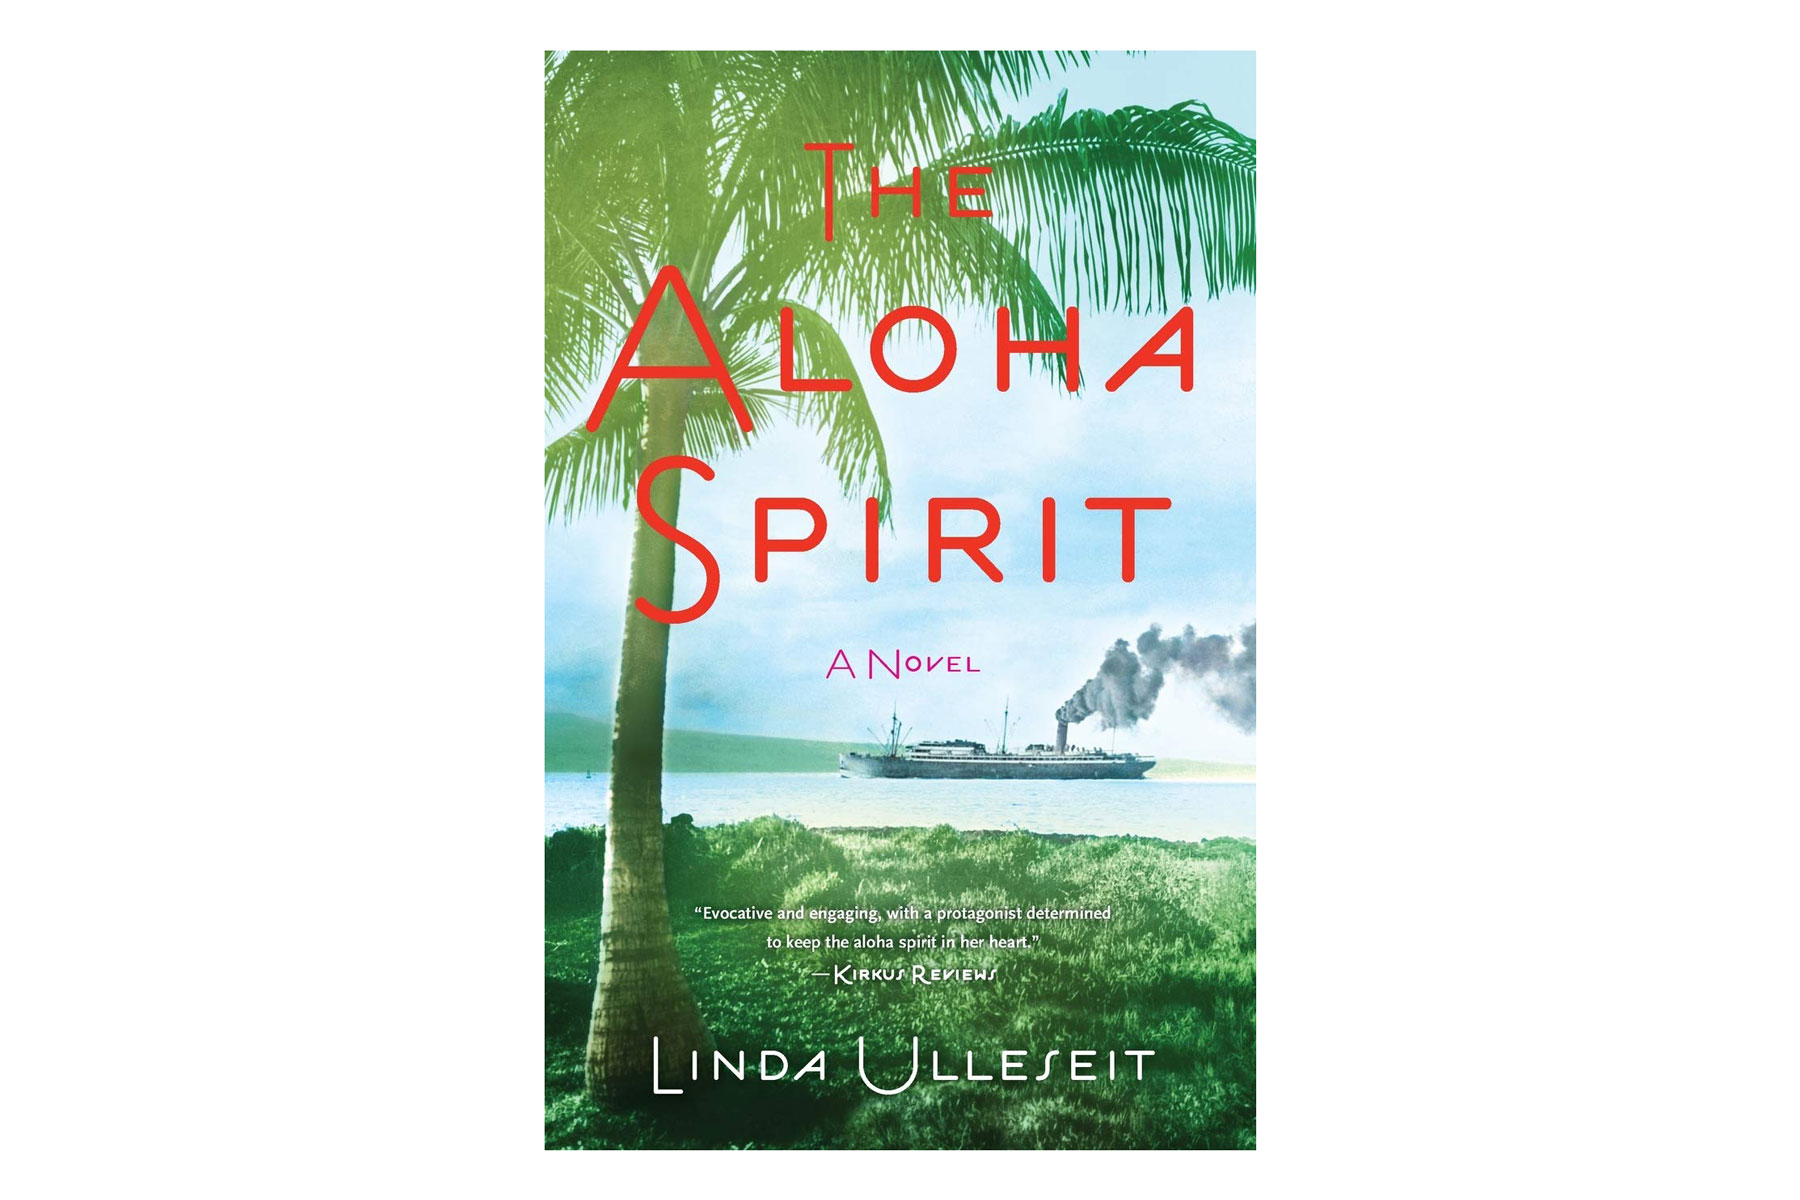 The Aloha Spirit book